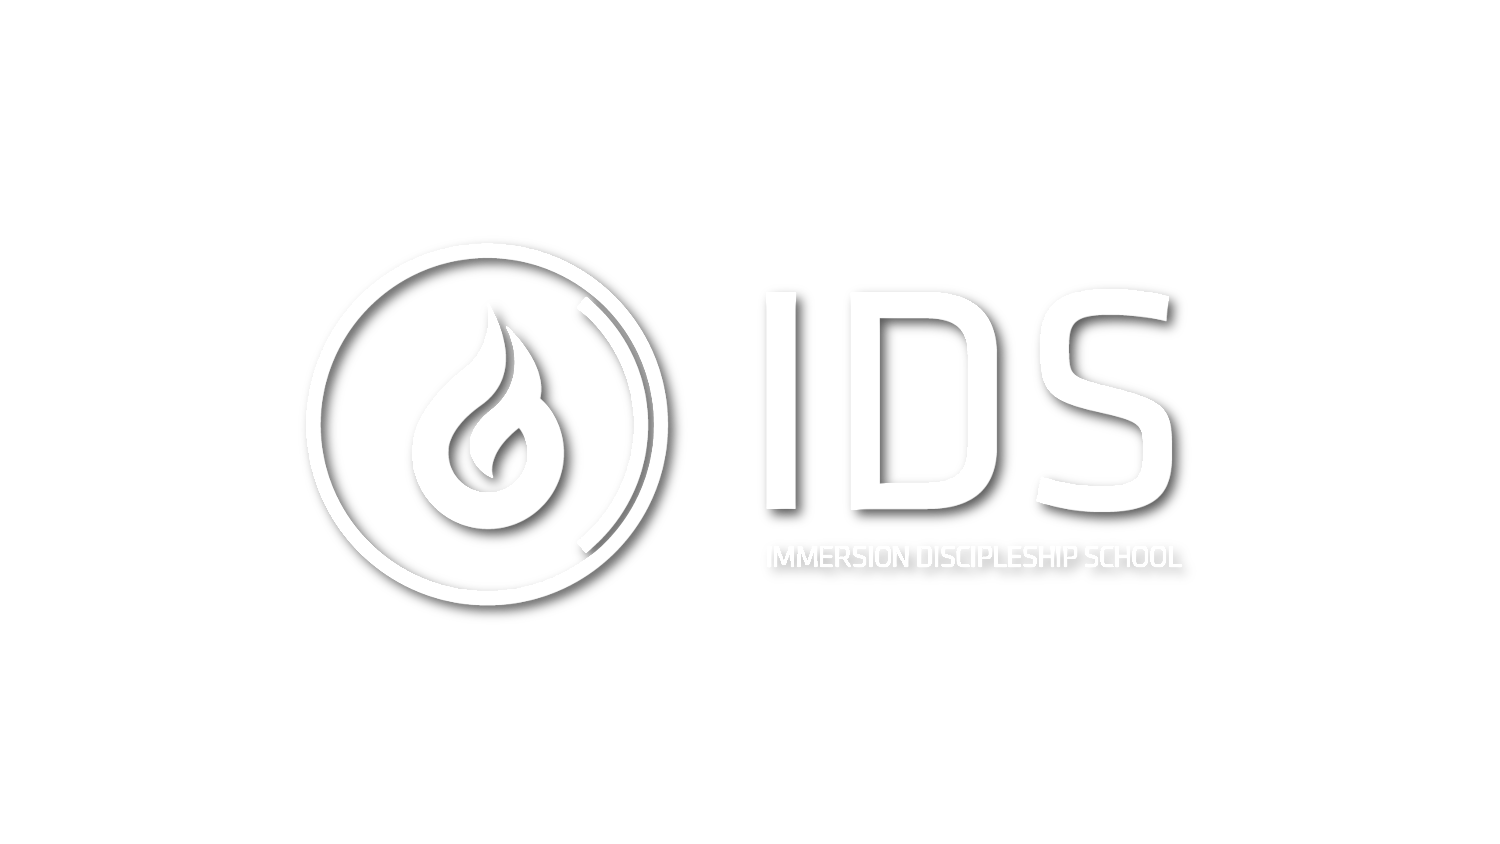 IMMERSION DISCIPLESHIP SCHOOL